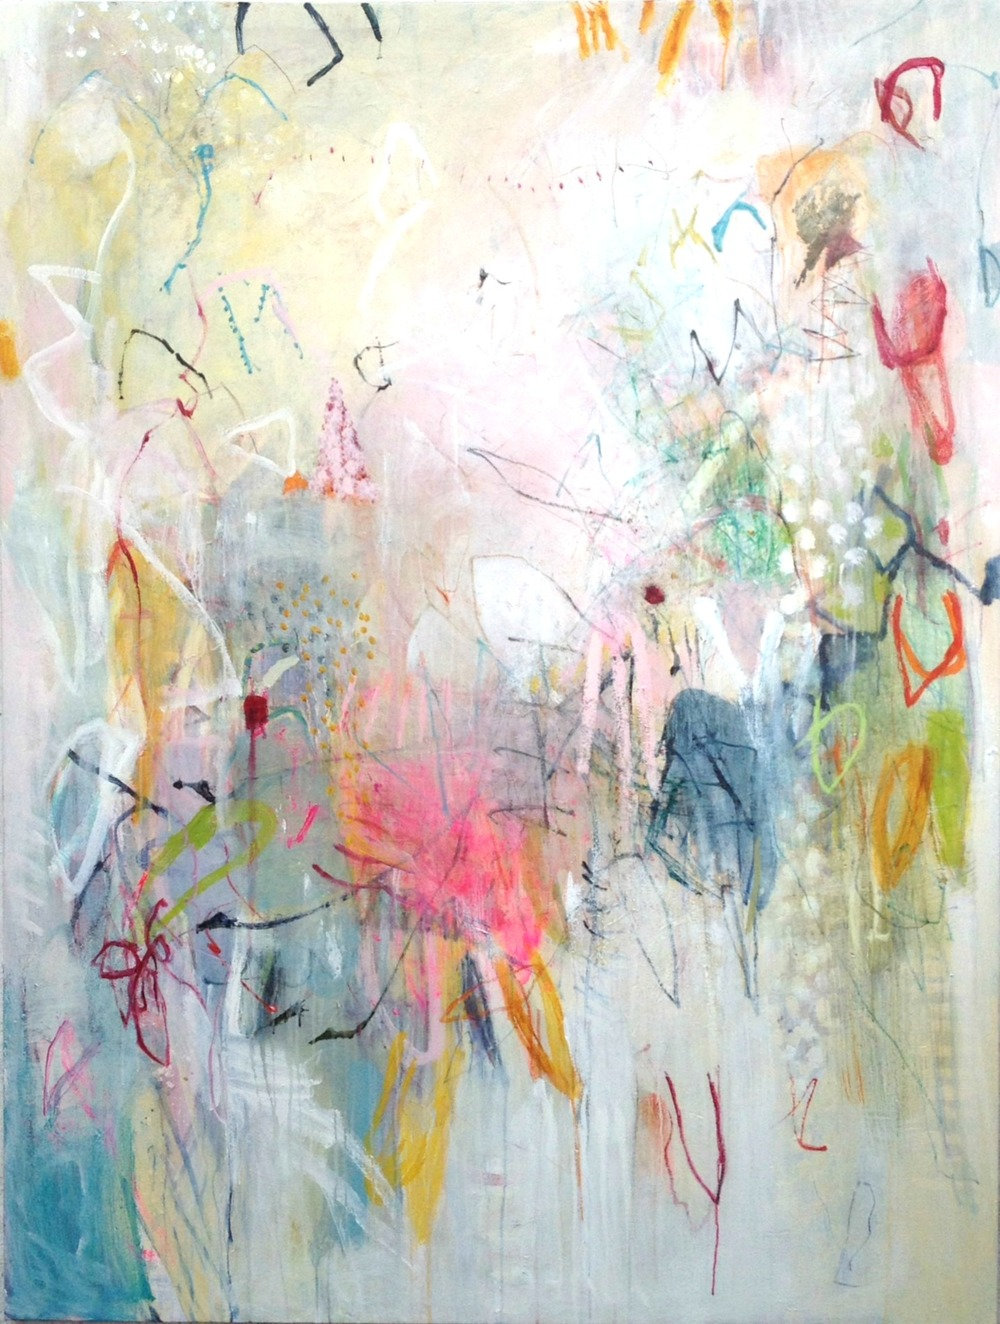 Michelle Breton,  Gossamer,  Acrylic on Canvas, 183 x 153cm, $12,000